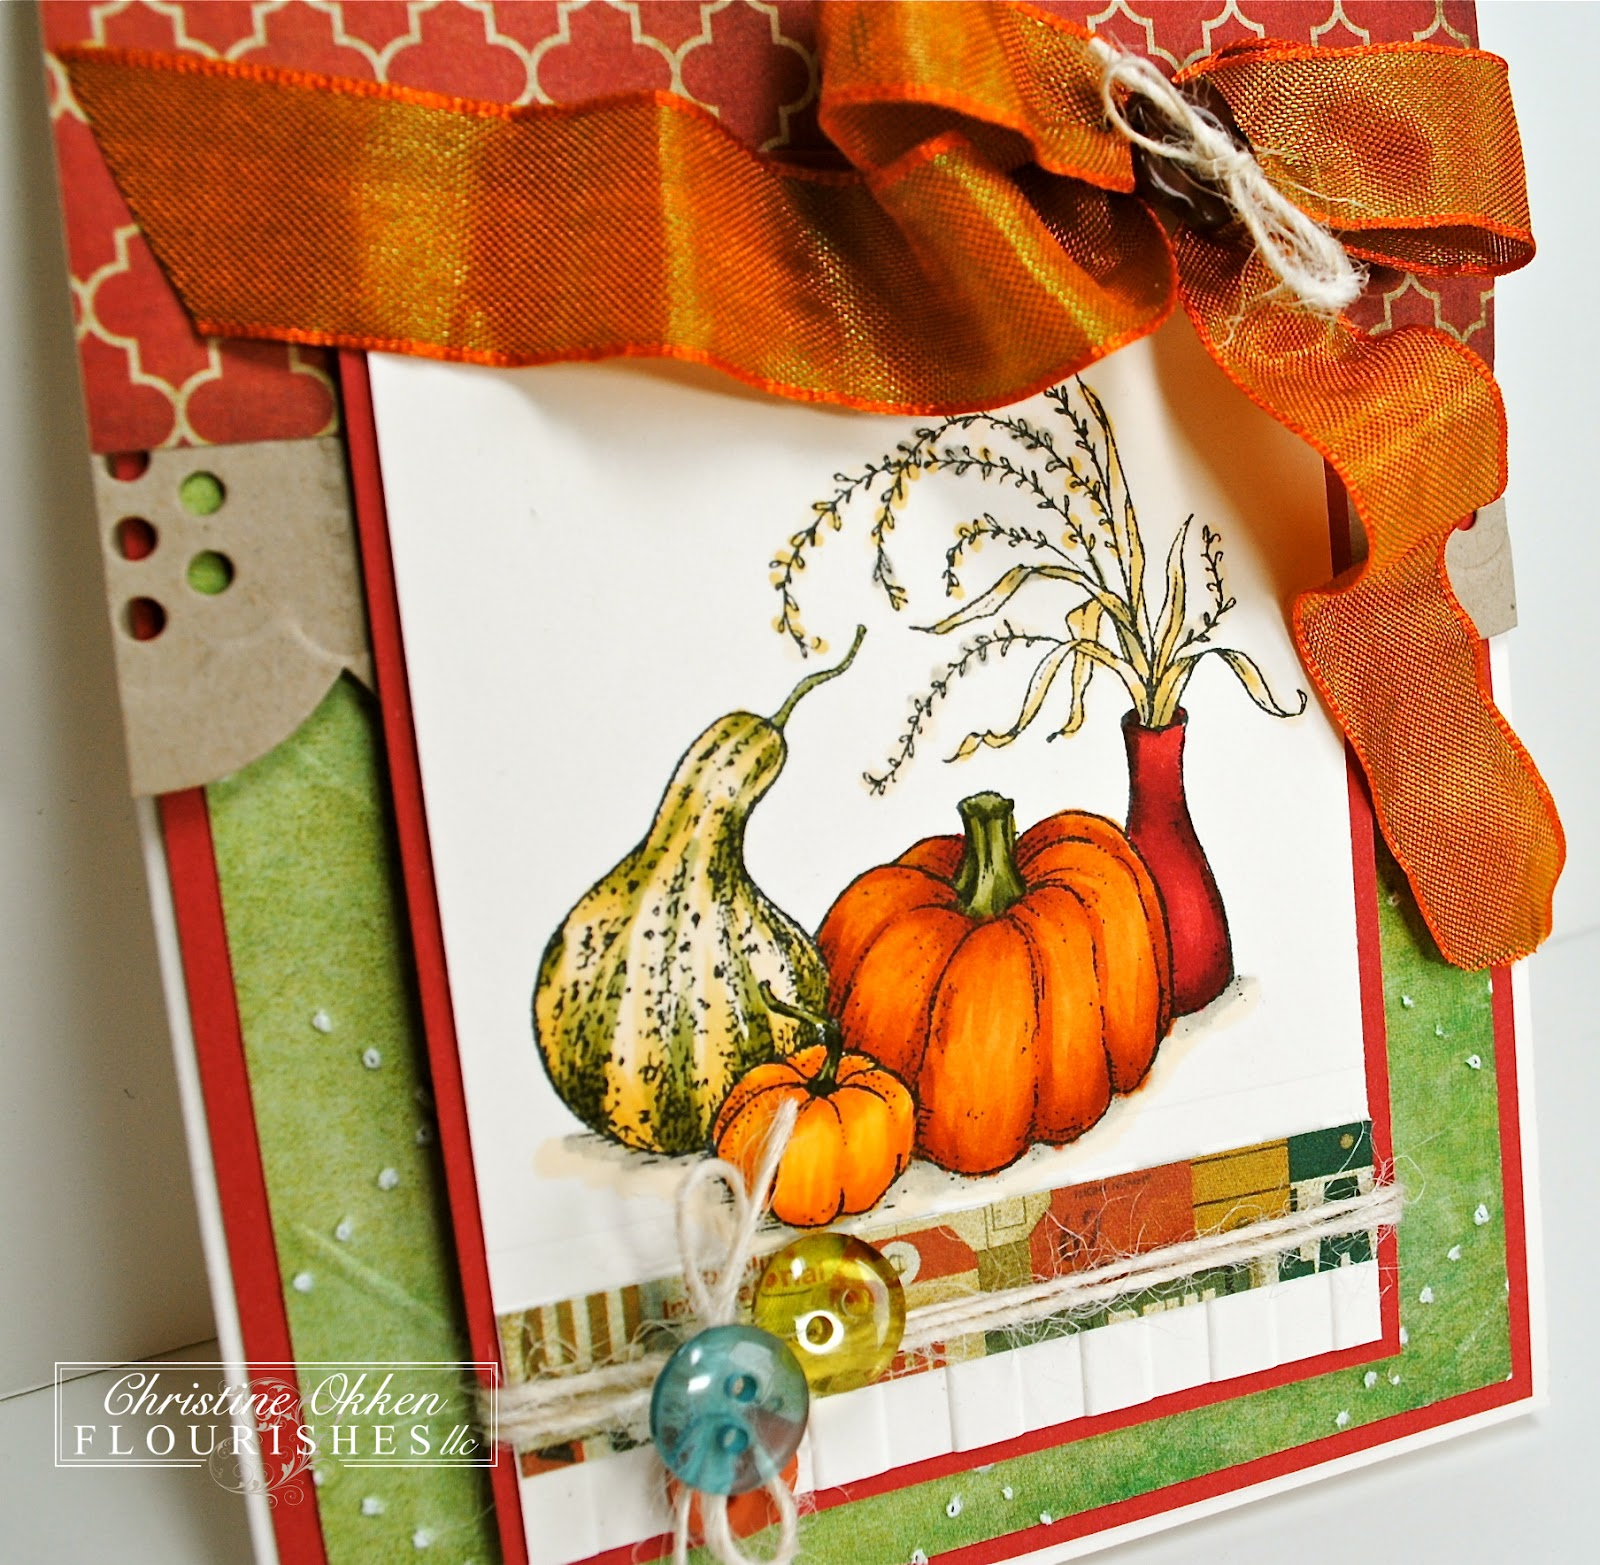 Christinecreations Sketchy September And Another Winner